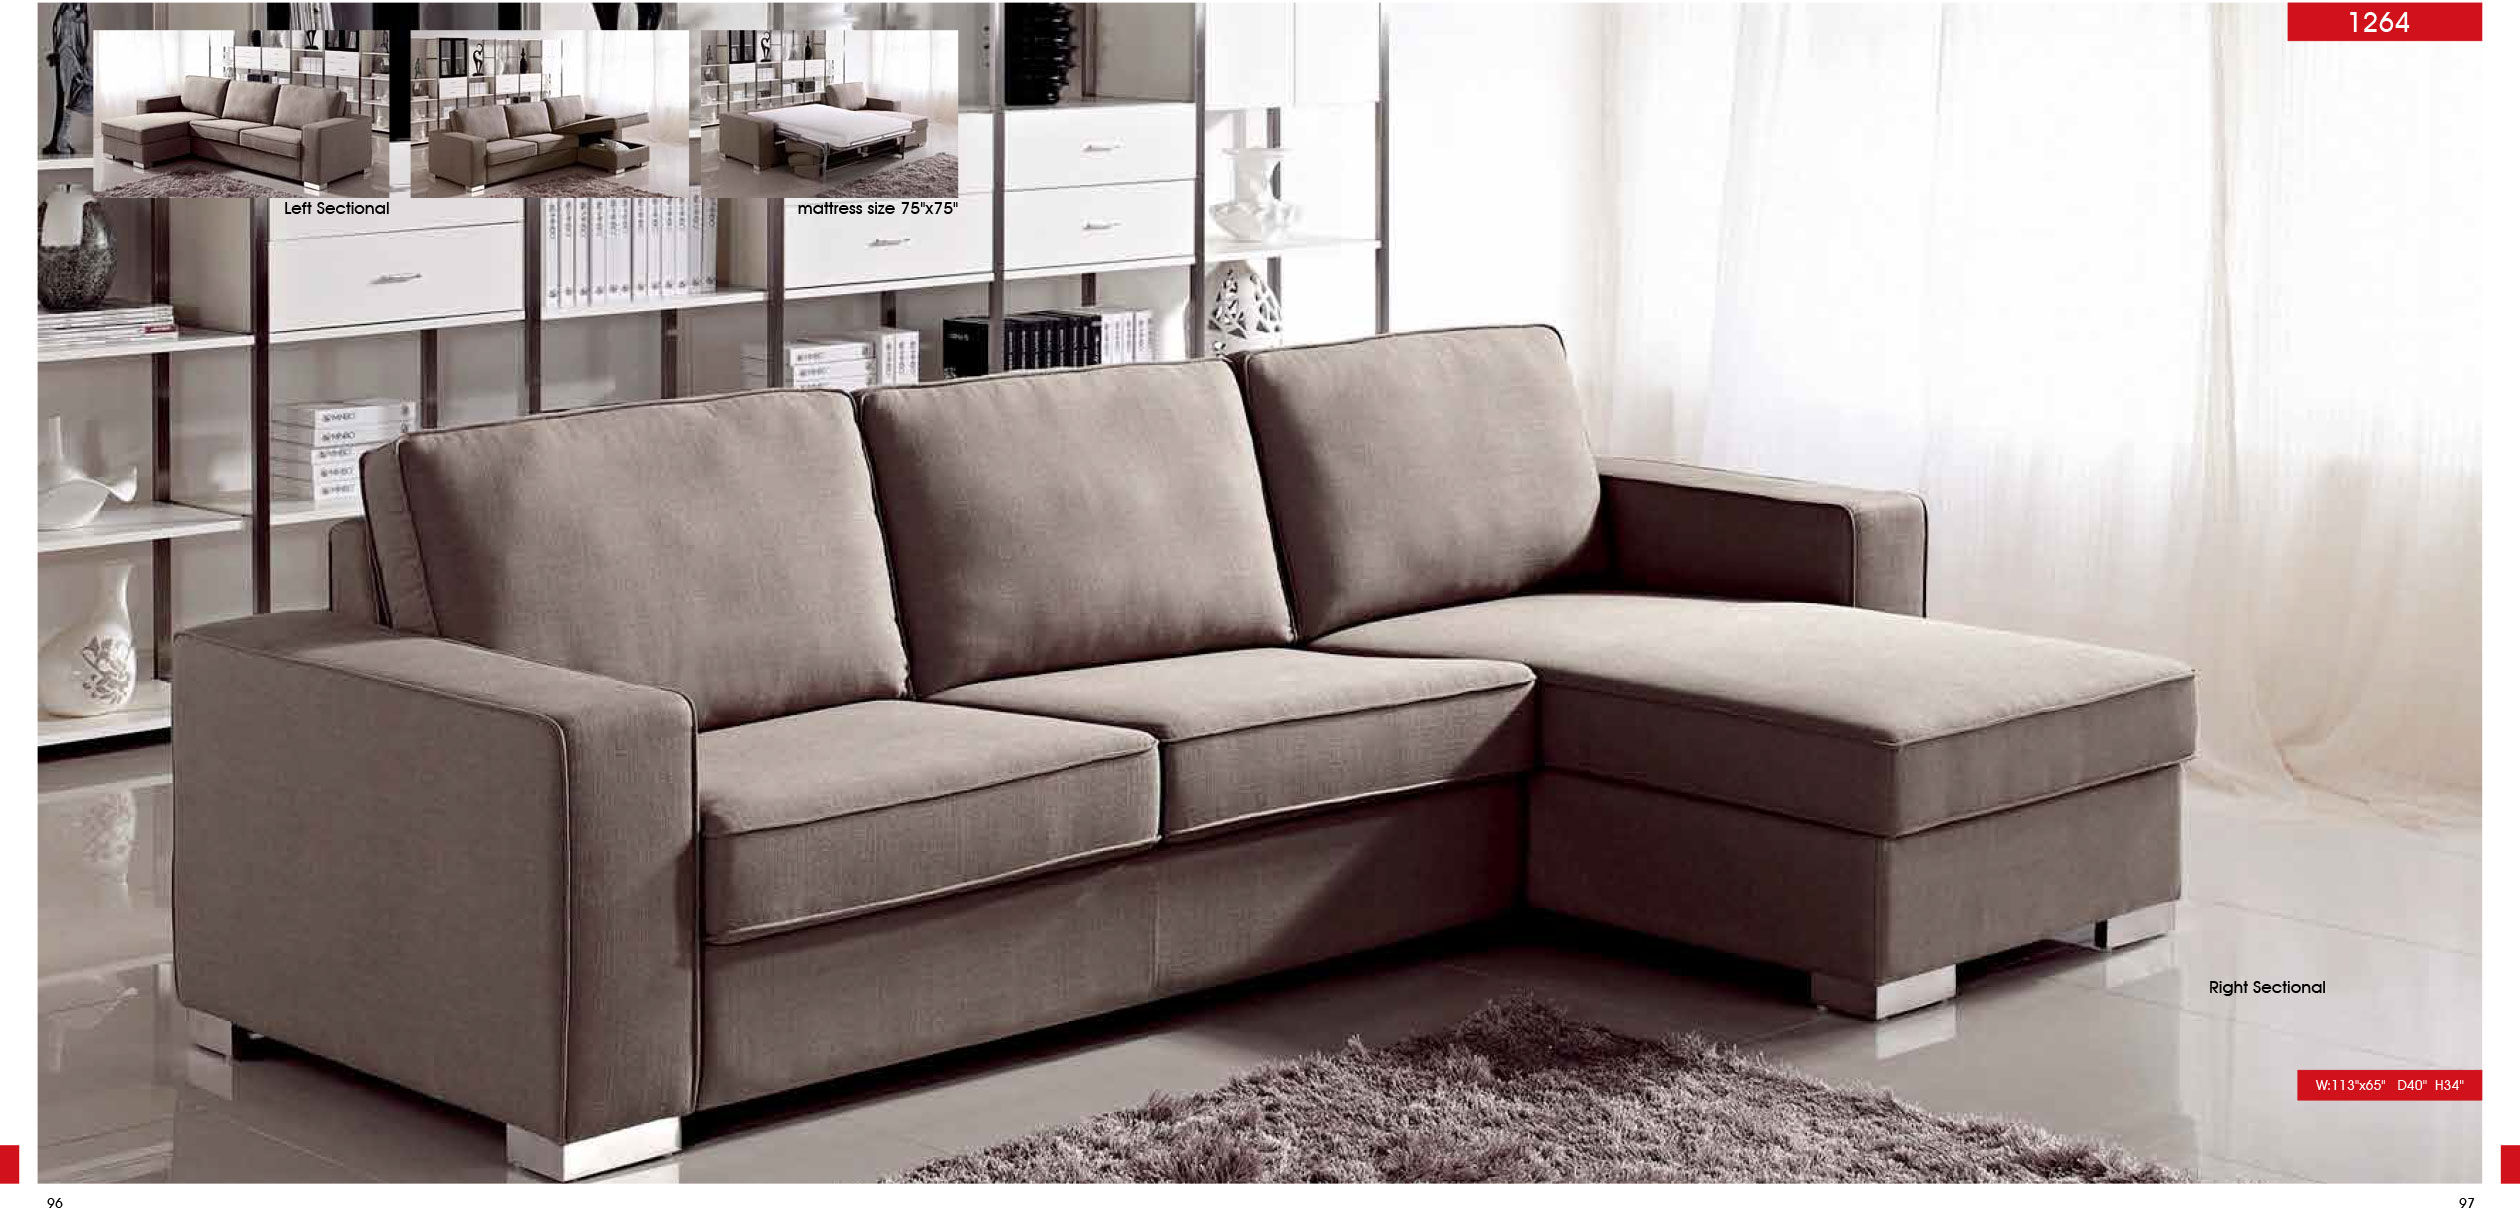 Sectionals Sa Furniture San Antonio Furniture Of Texas in 11 Some of the Coolest Ways How to Upgrade Living Room Sets San Antonio